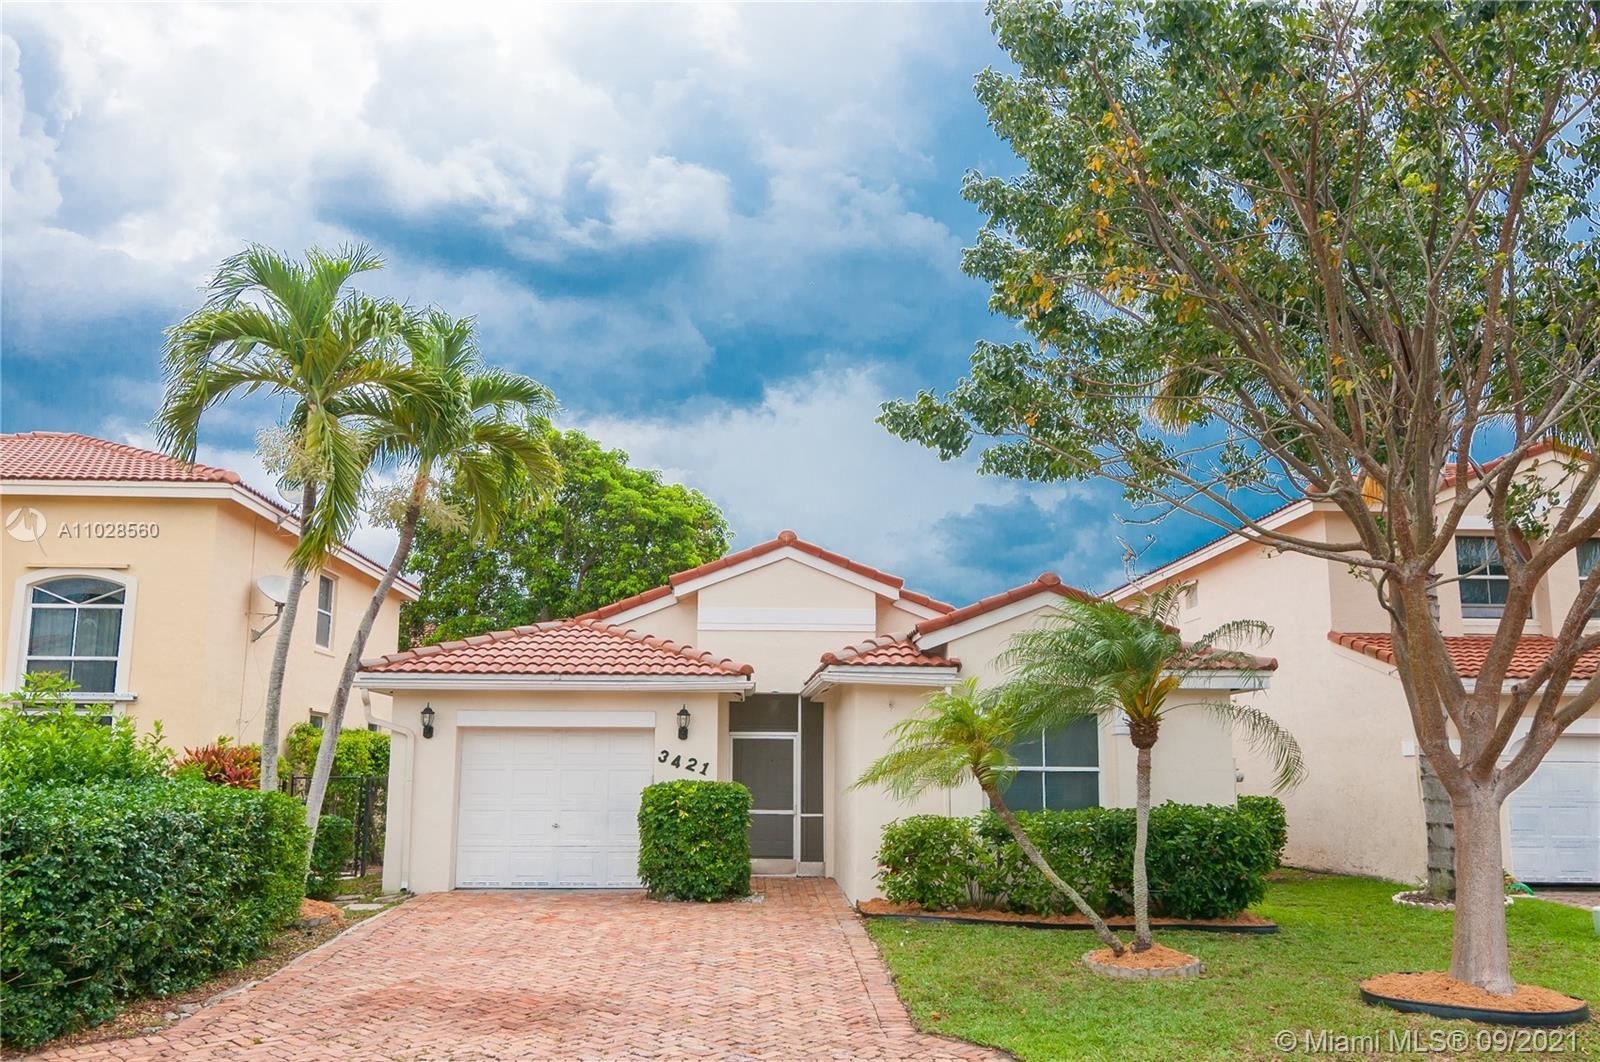 3421 NW 110th Way, Coral Springs, FL 33065 - #: A11028560